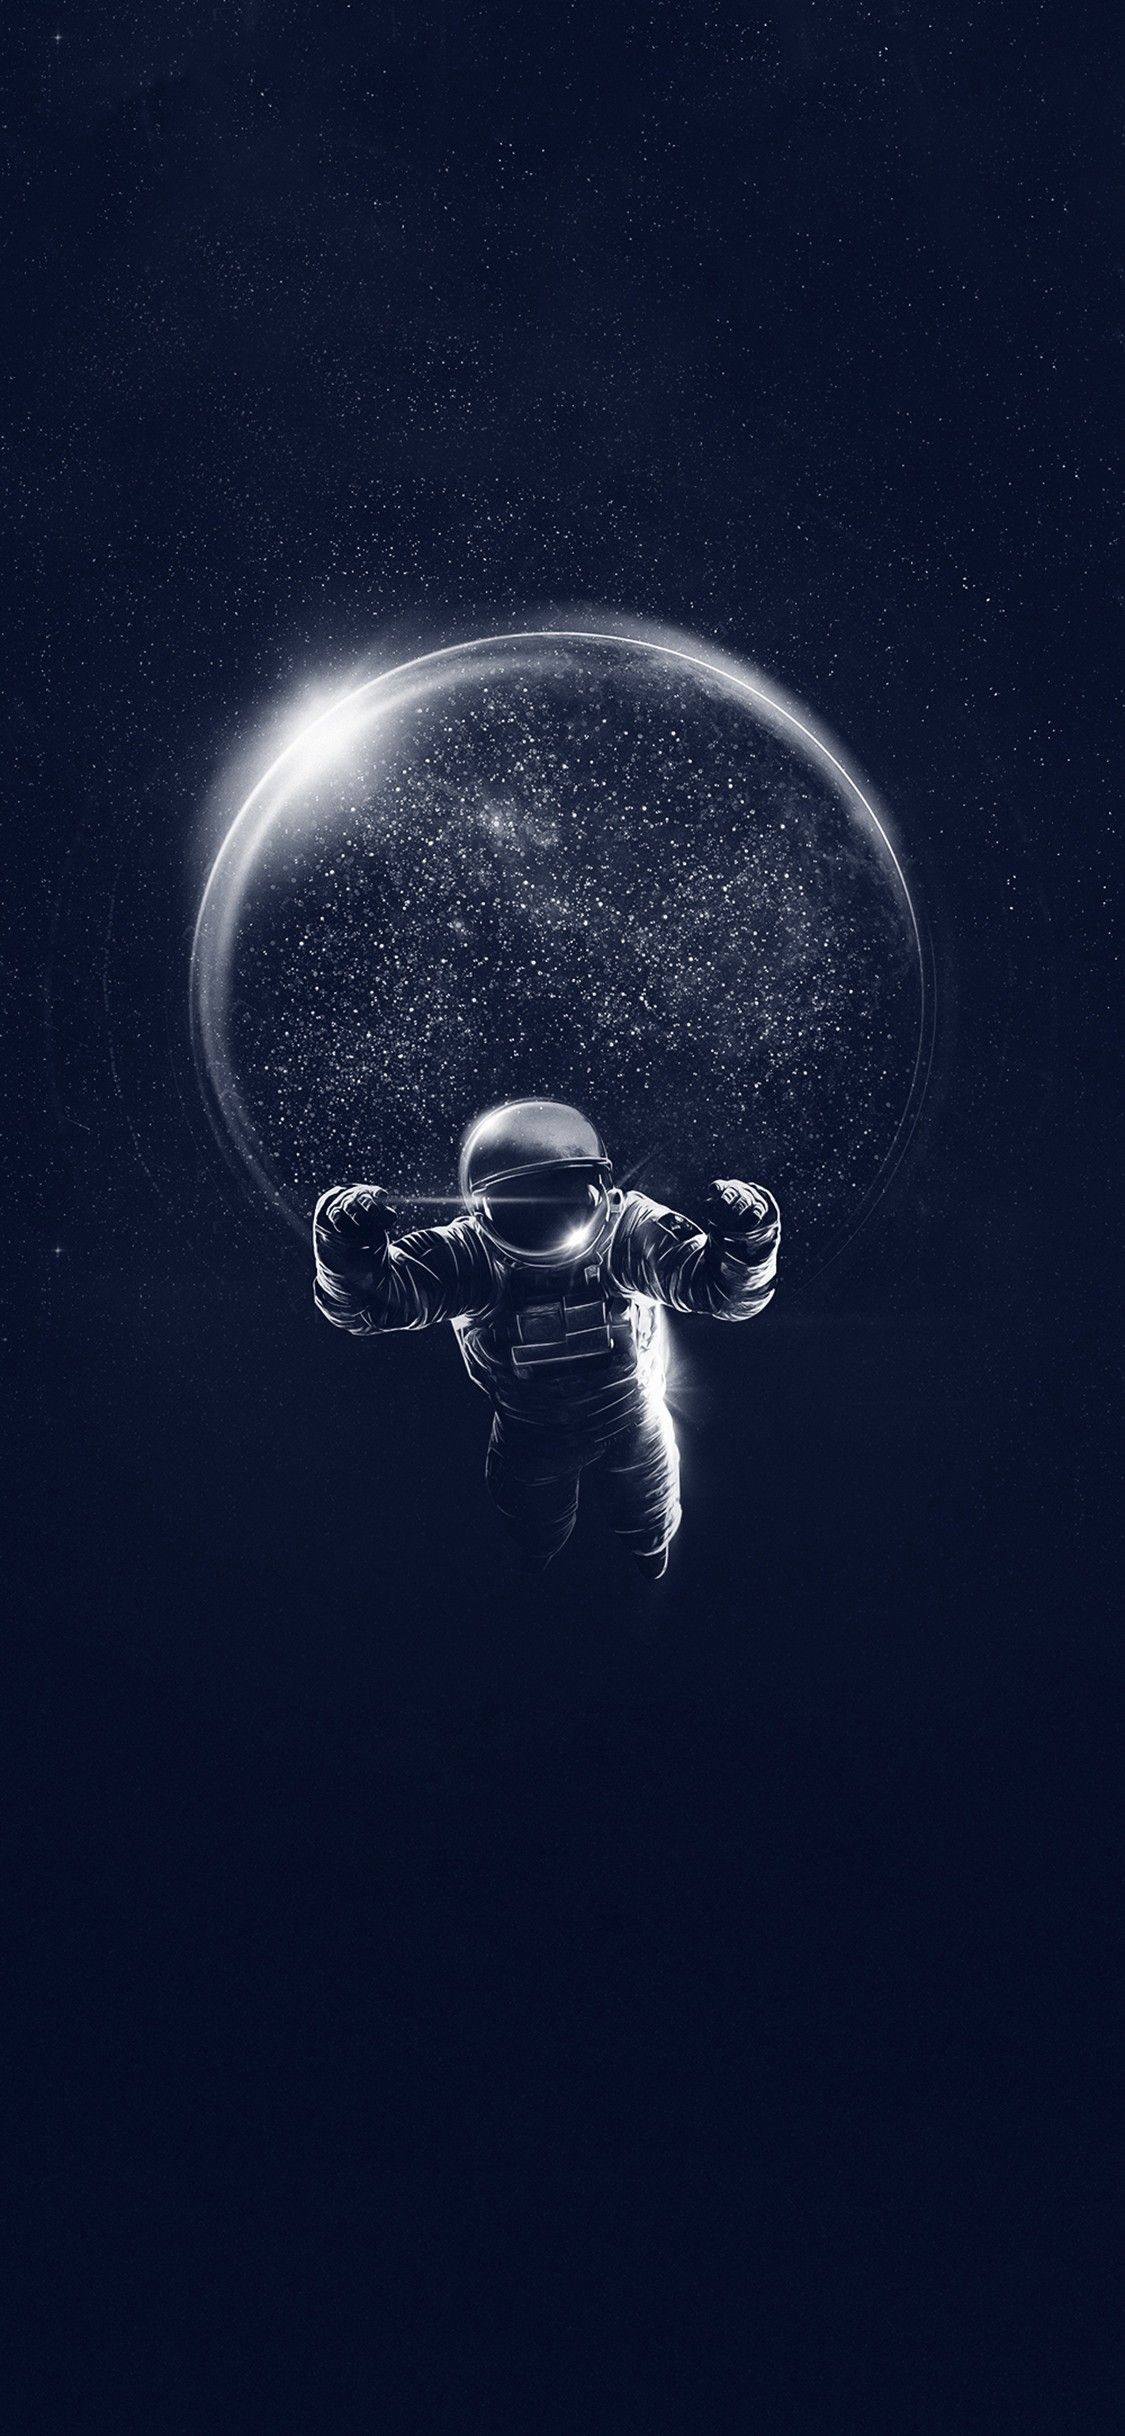 Moon Astronaut Wallpaper Wallpaper Space New Wallpaper Iphone